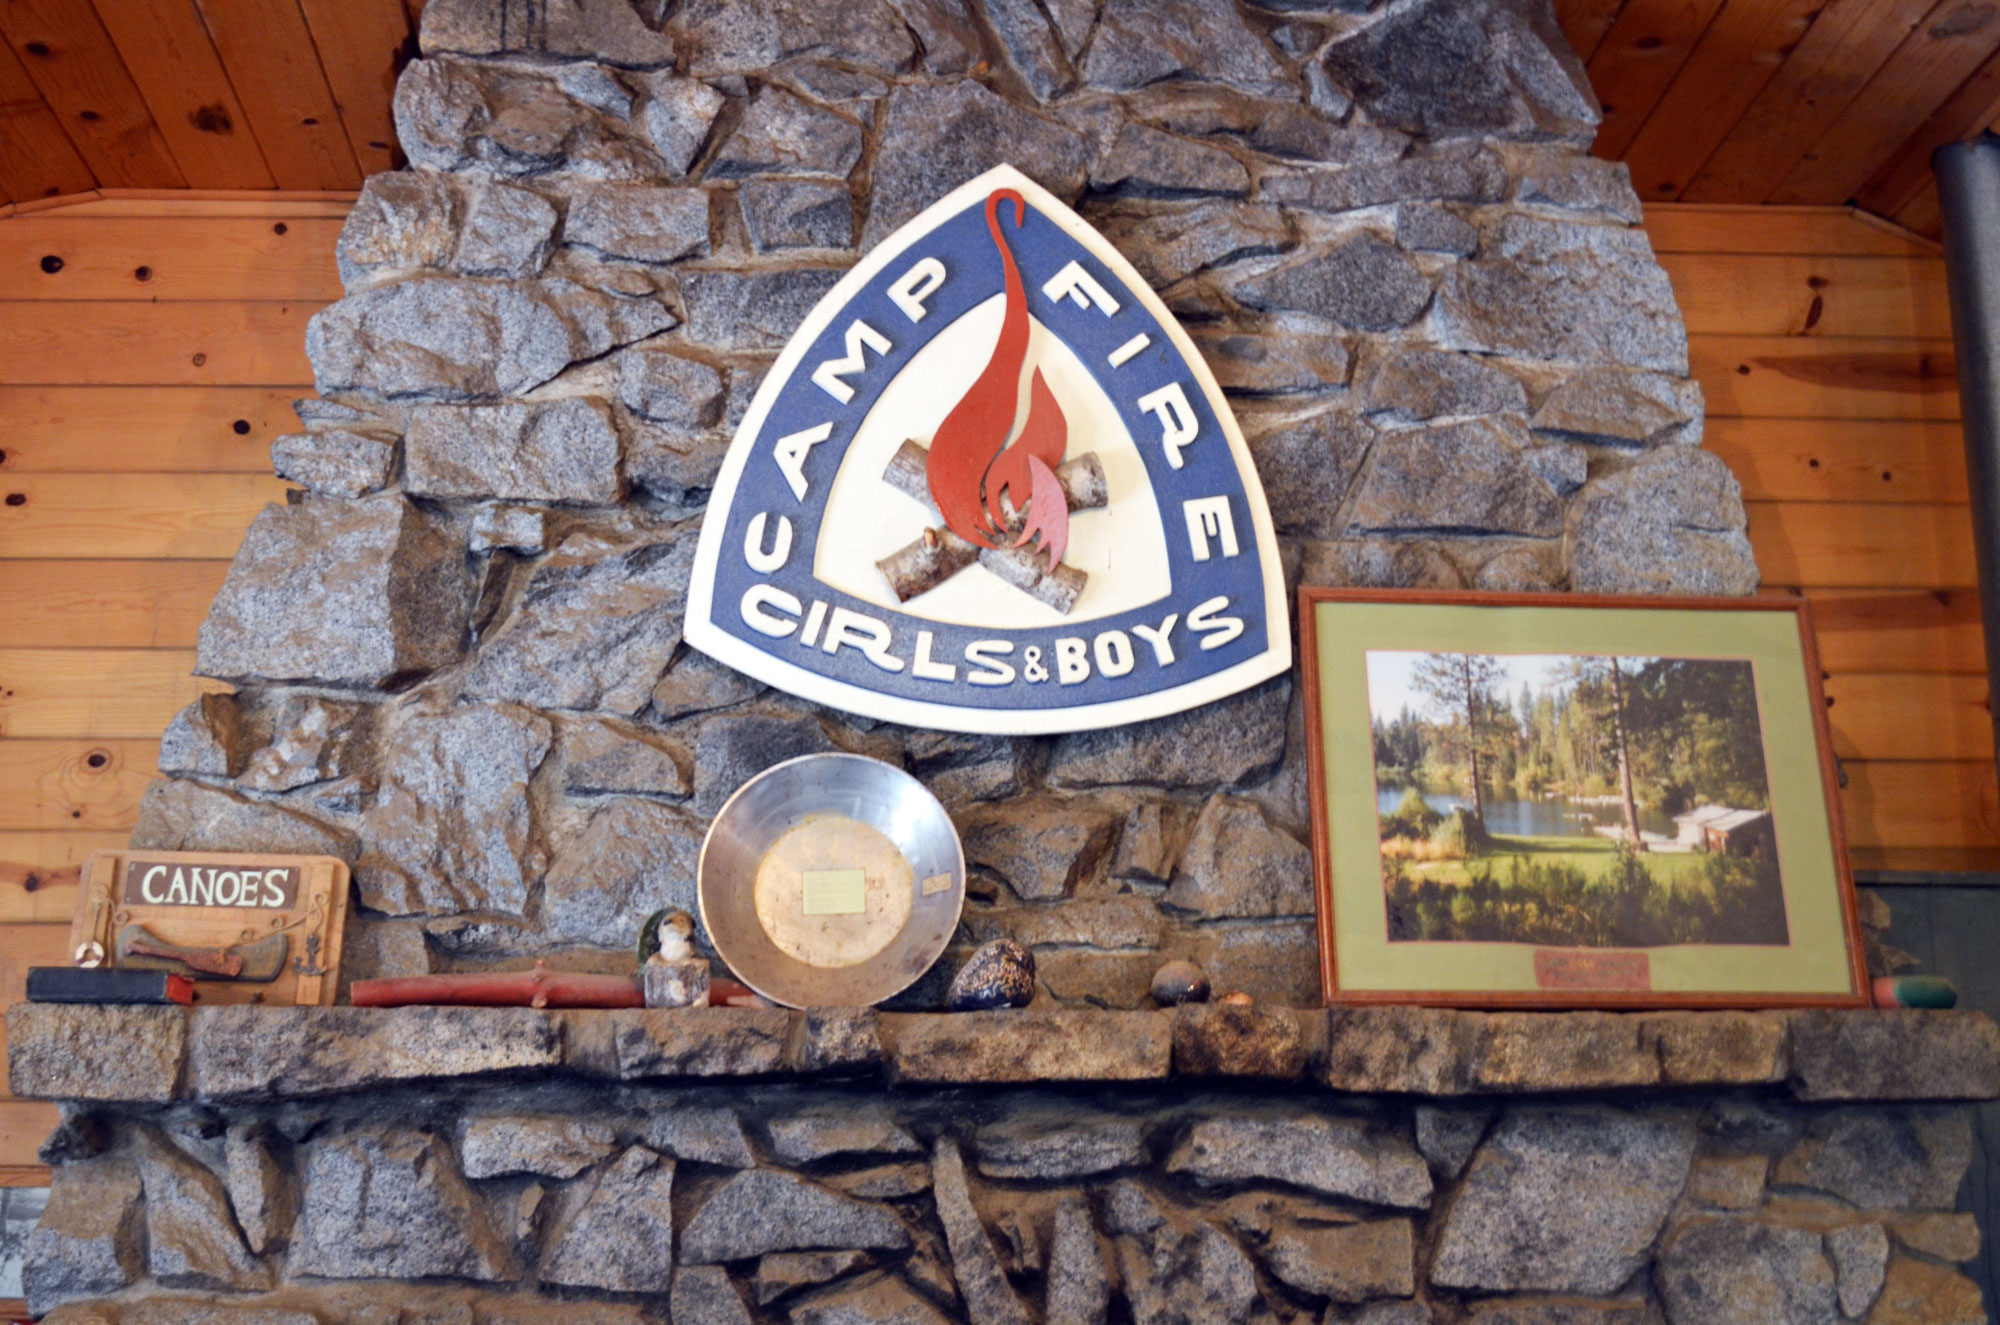 Camp Fire logo on fireplace hearth